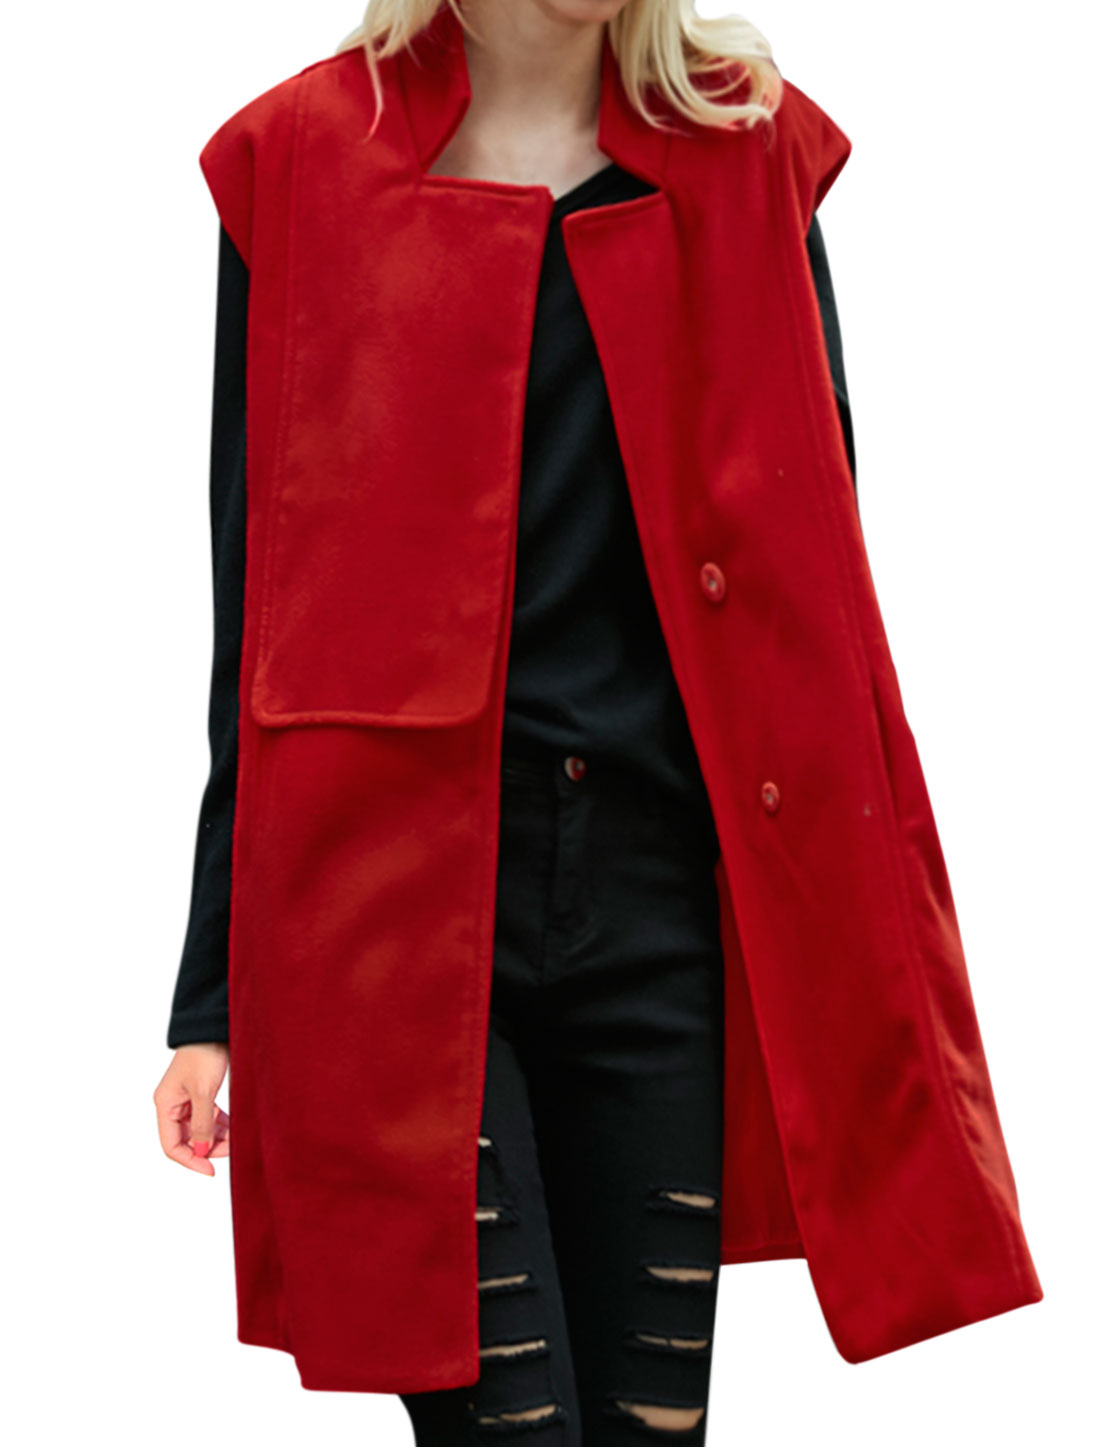 Women Stand Collar Layered Front Loose Tunic Worsted Vest Red XS